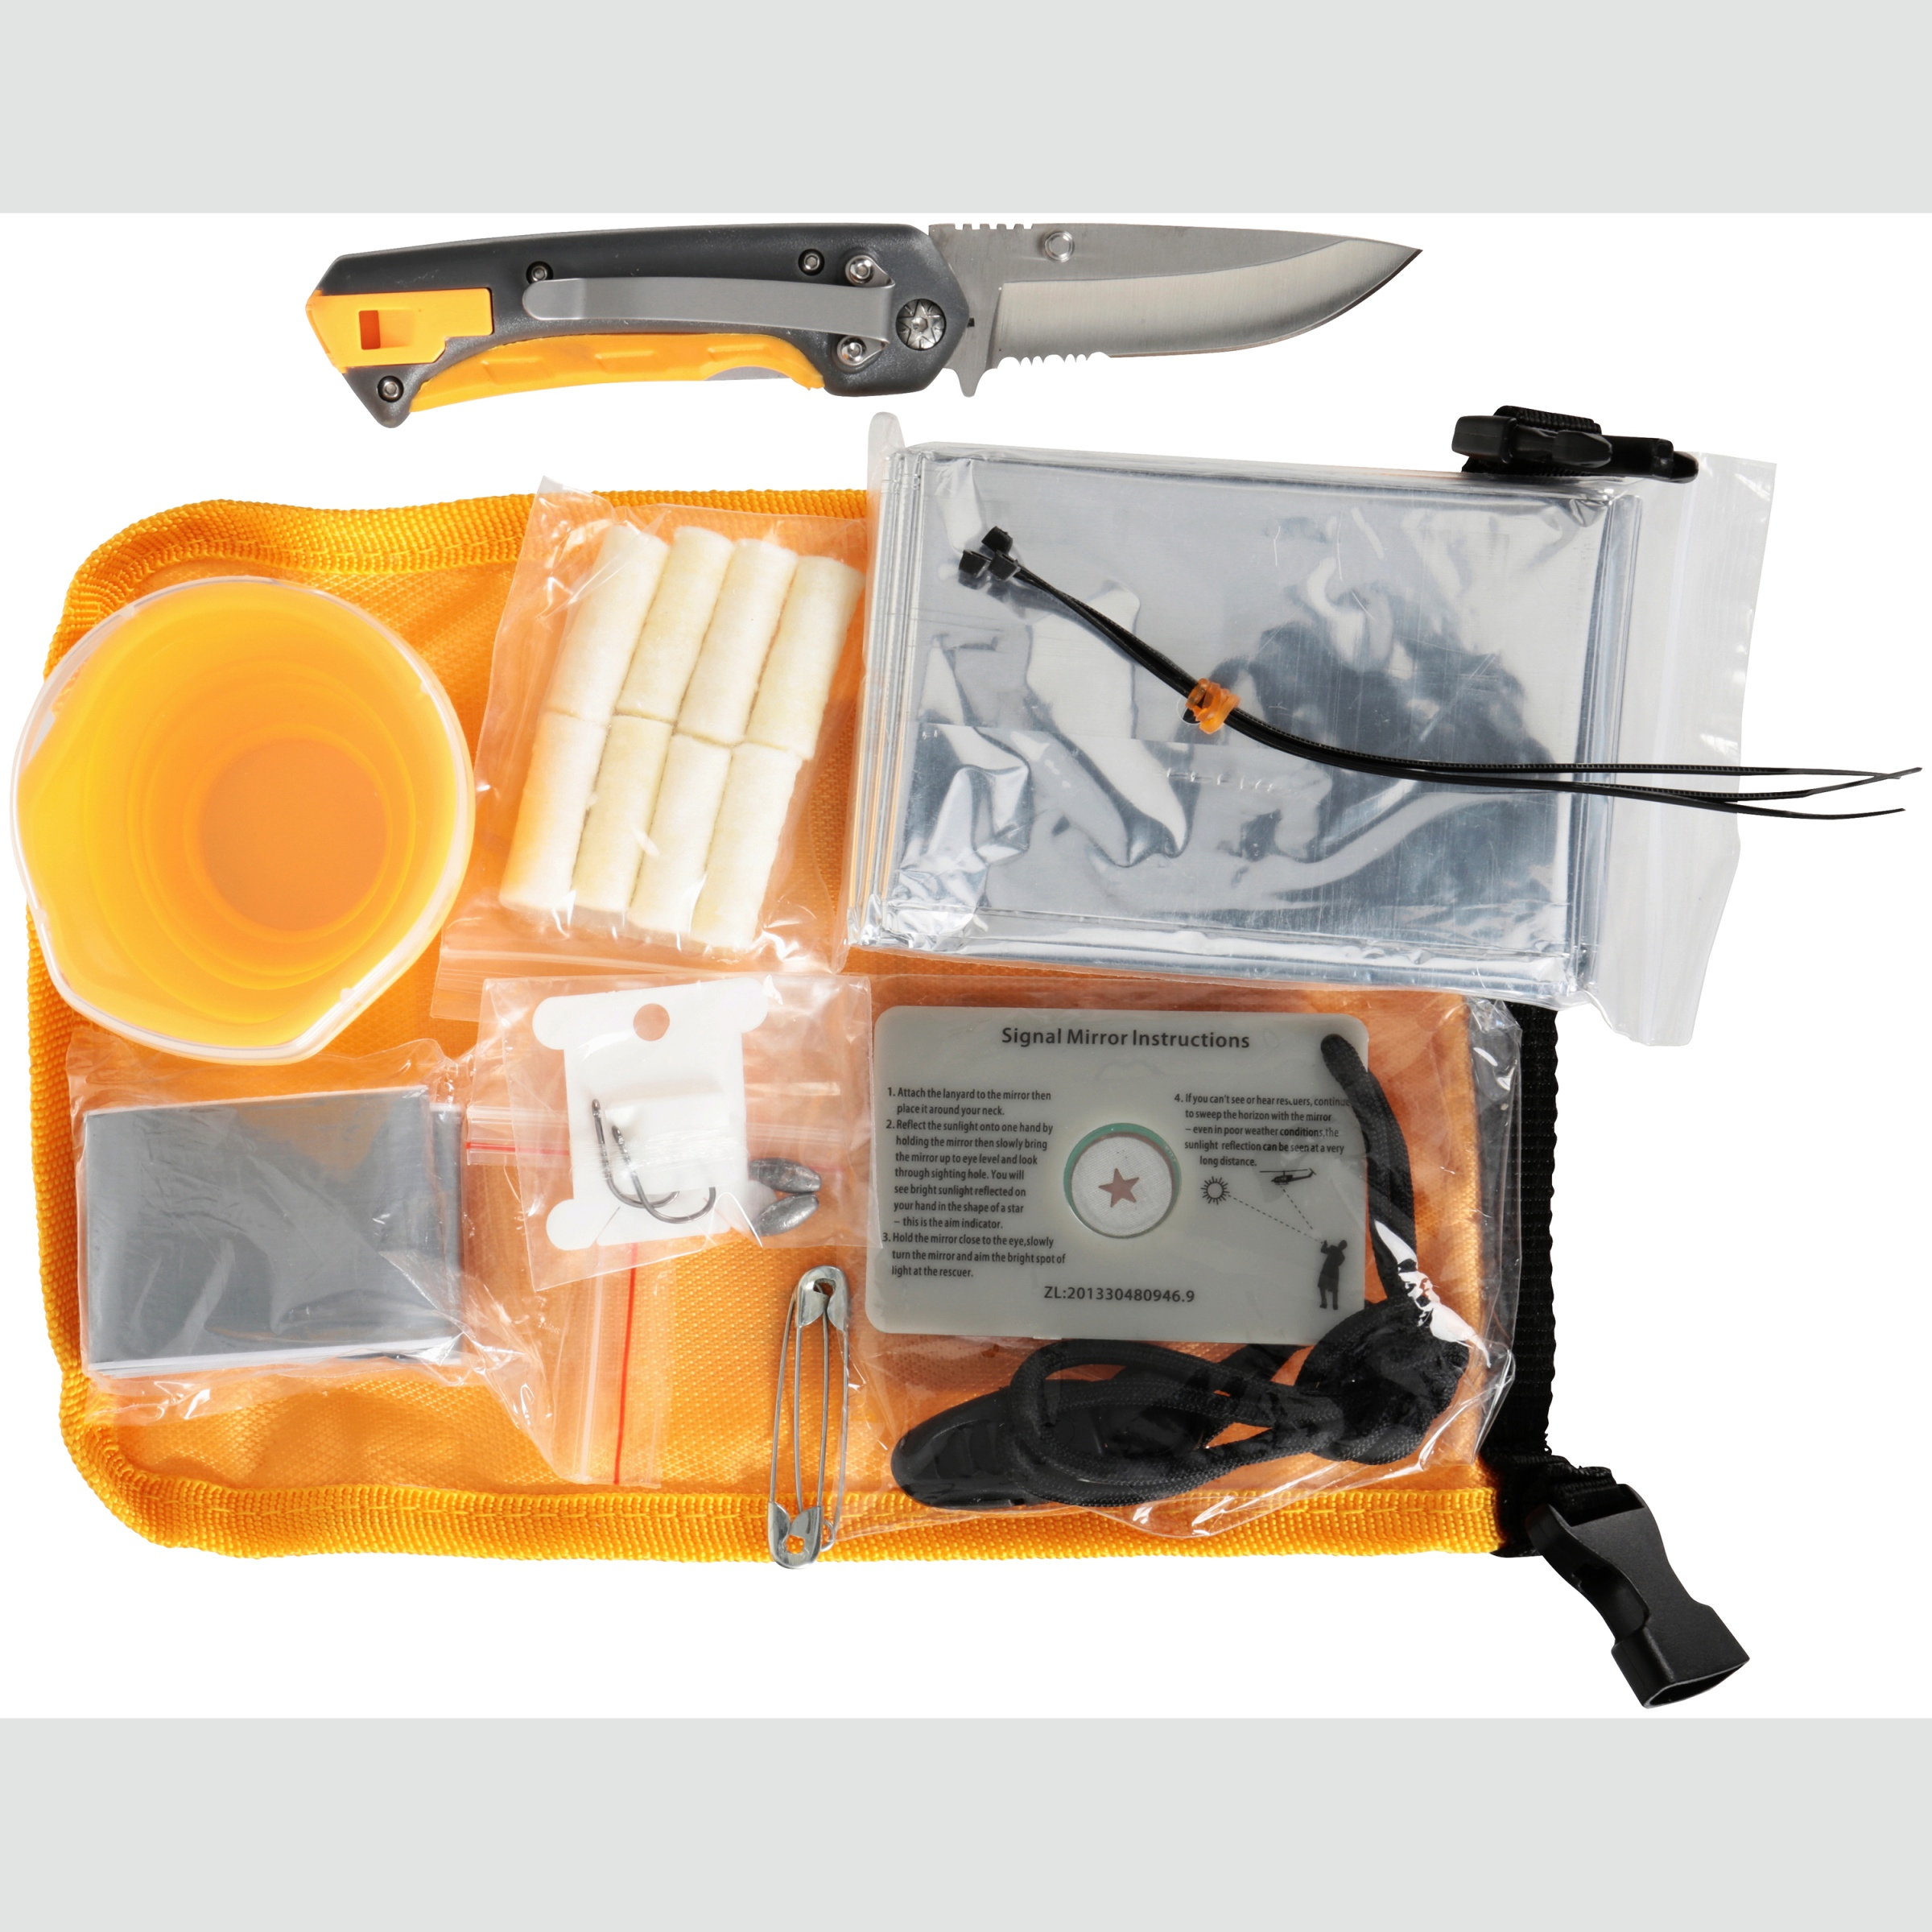 Smith's Outdoor Knife and Survival Kit 11 pc Carded Pack by Smith's Consumer Products, Inc.